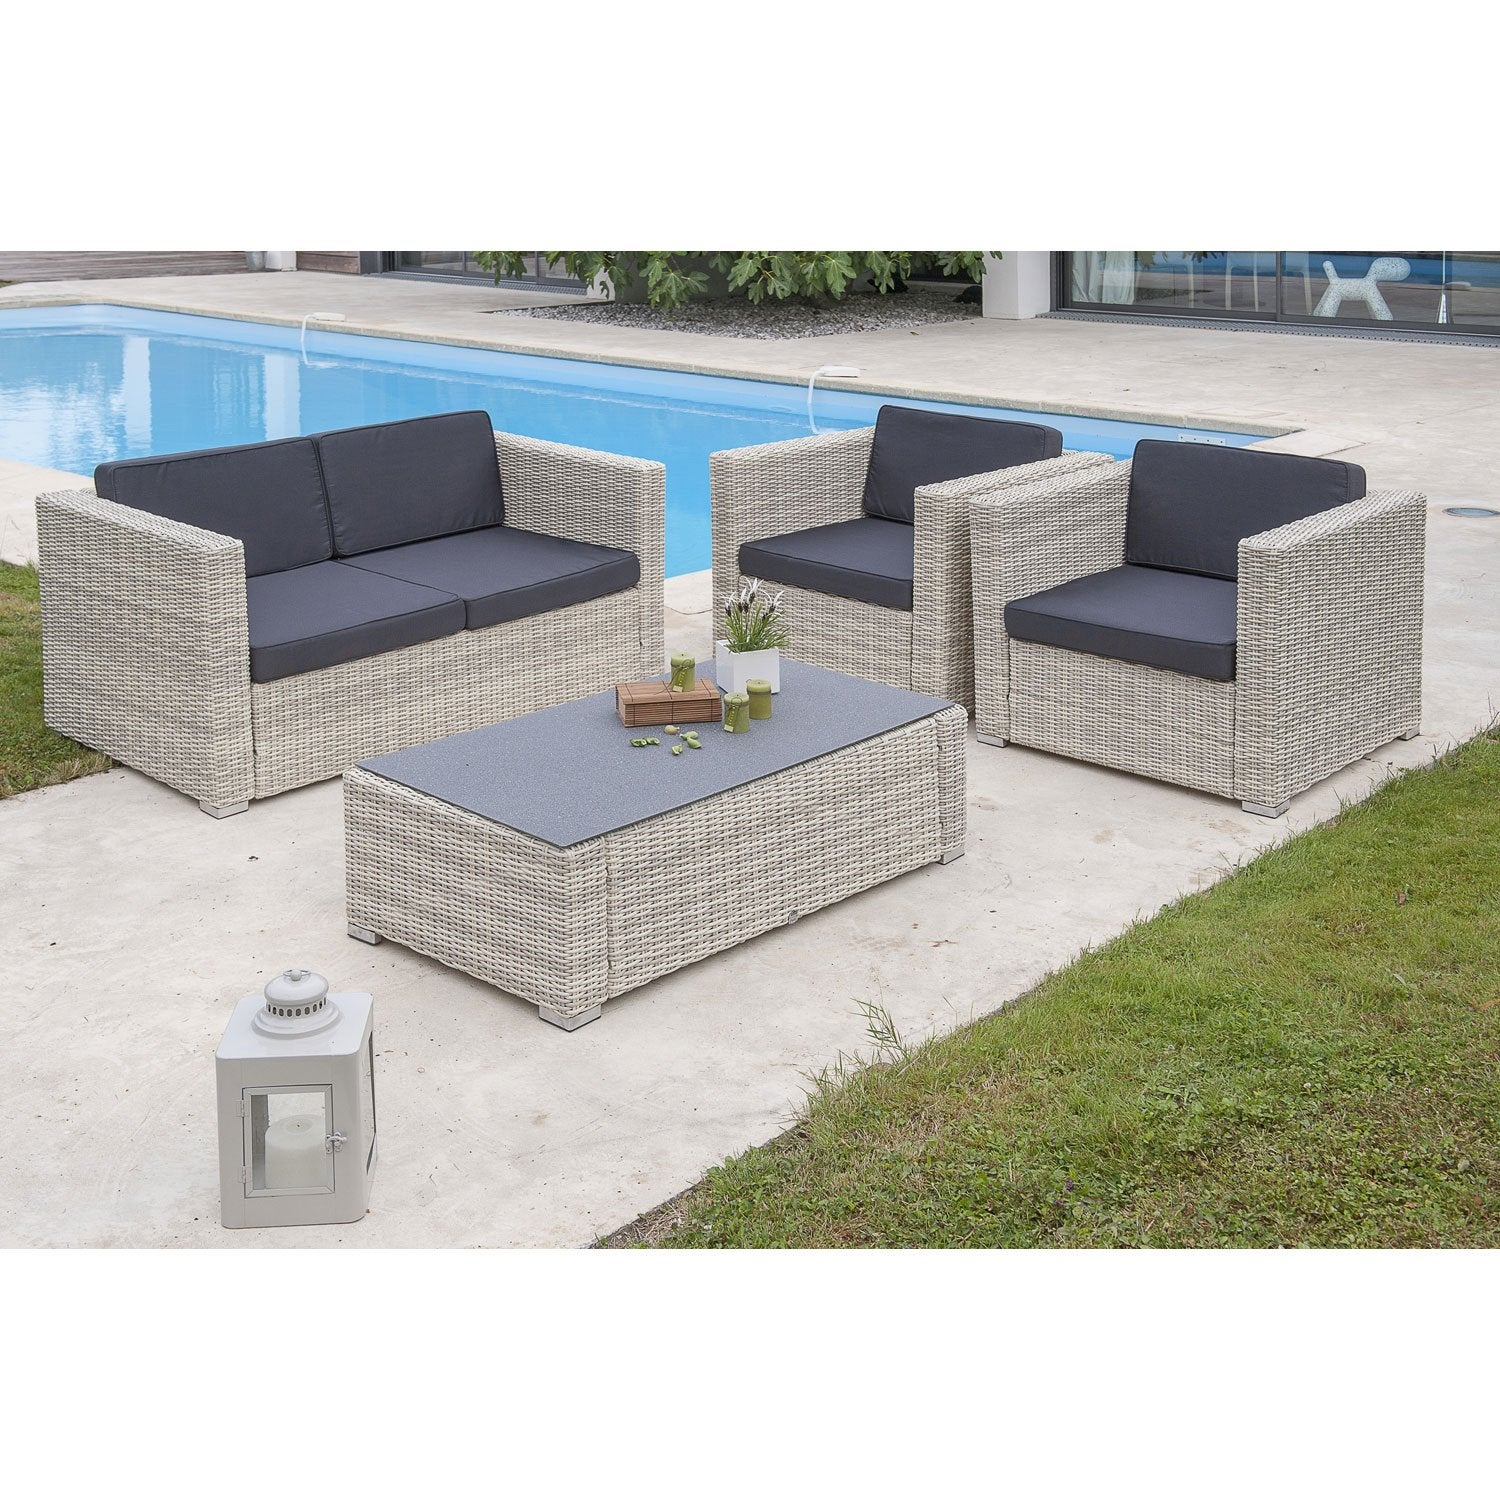 Salon bas de jardin oceane salon r sine tress e blanc table canap 2 fauteuils leroy merlin - Cdiscount salon de jardin goa blanc ...